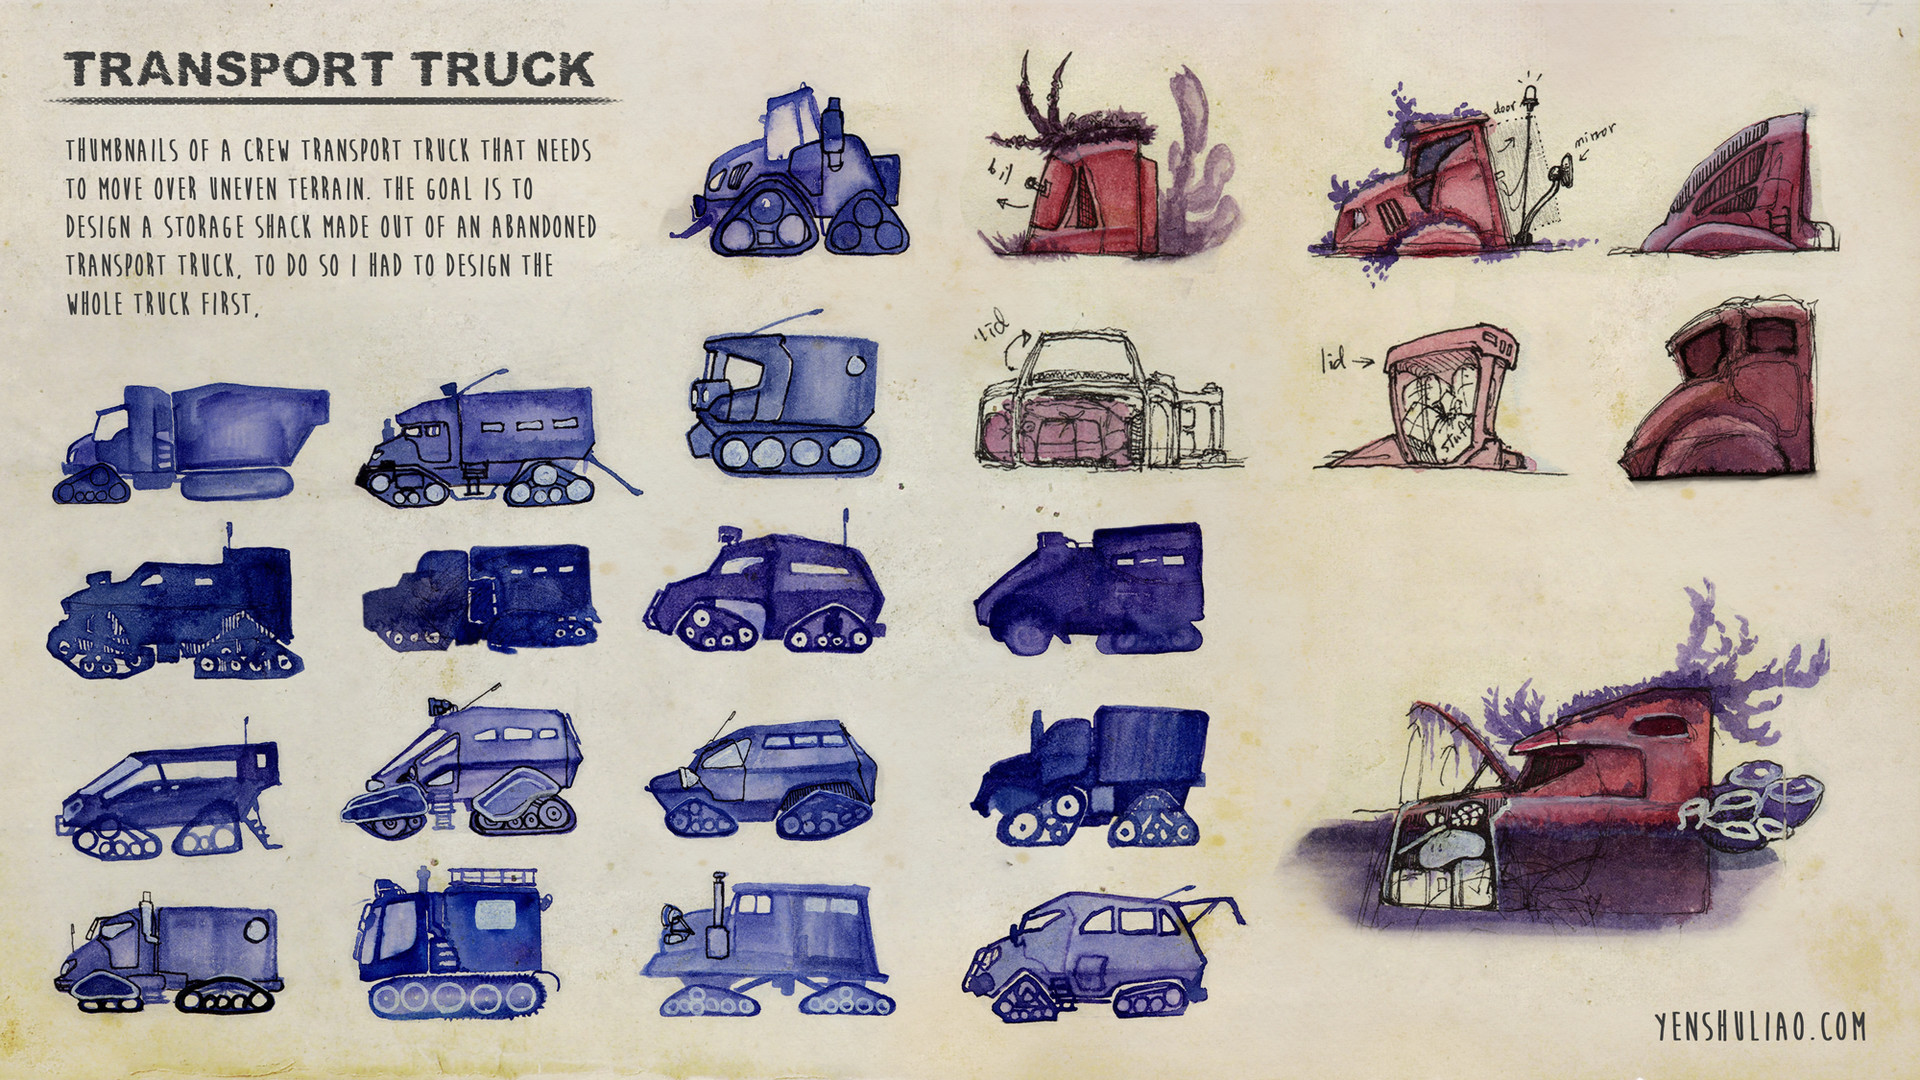 Crew Transport Truck thumbnails